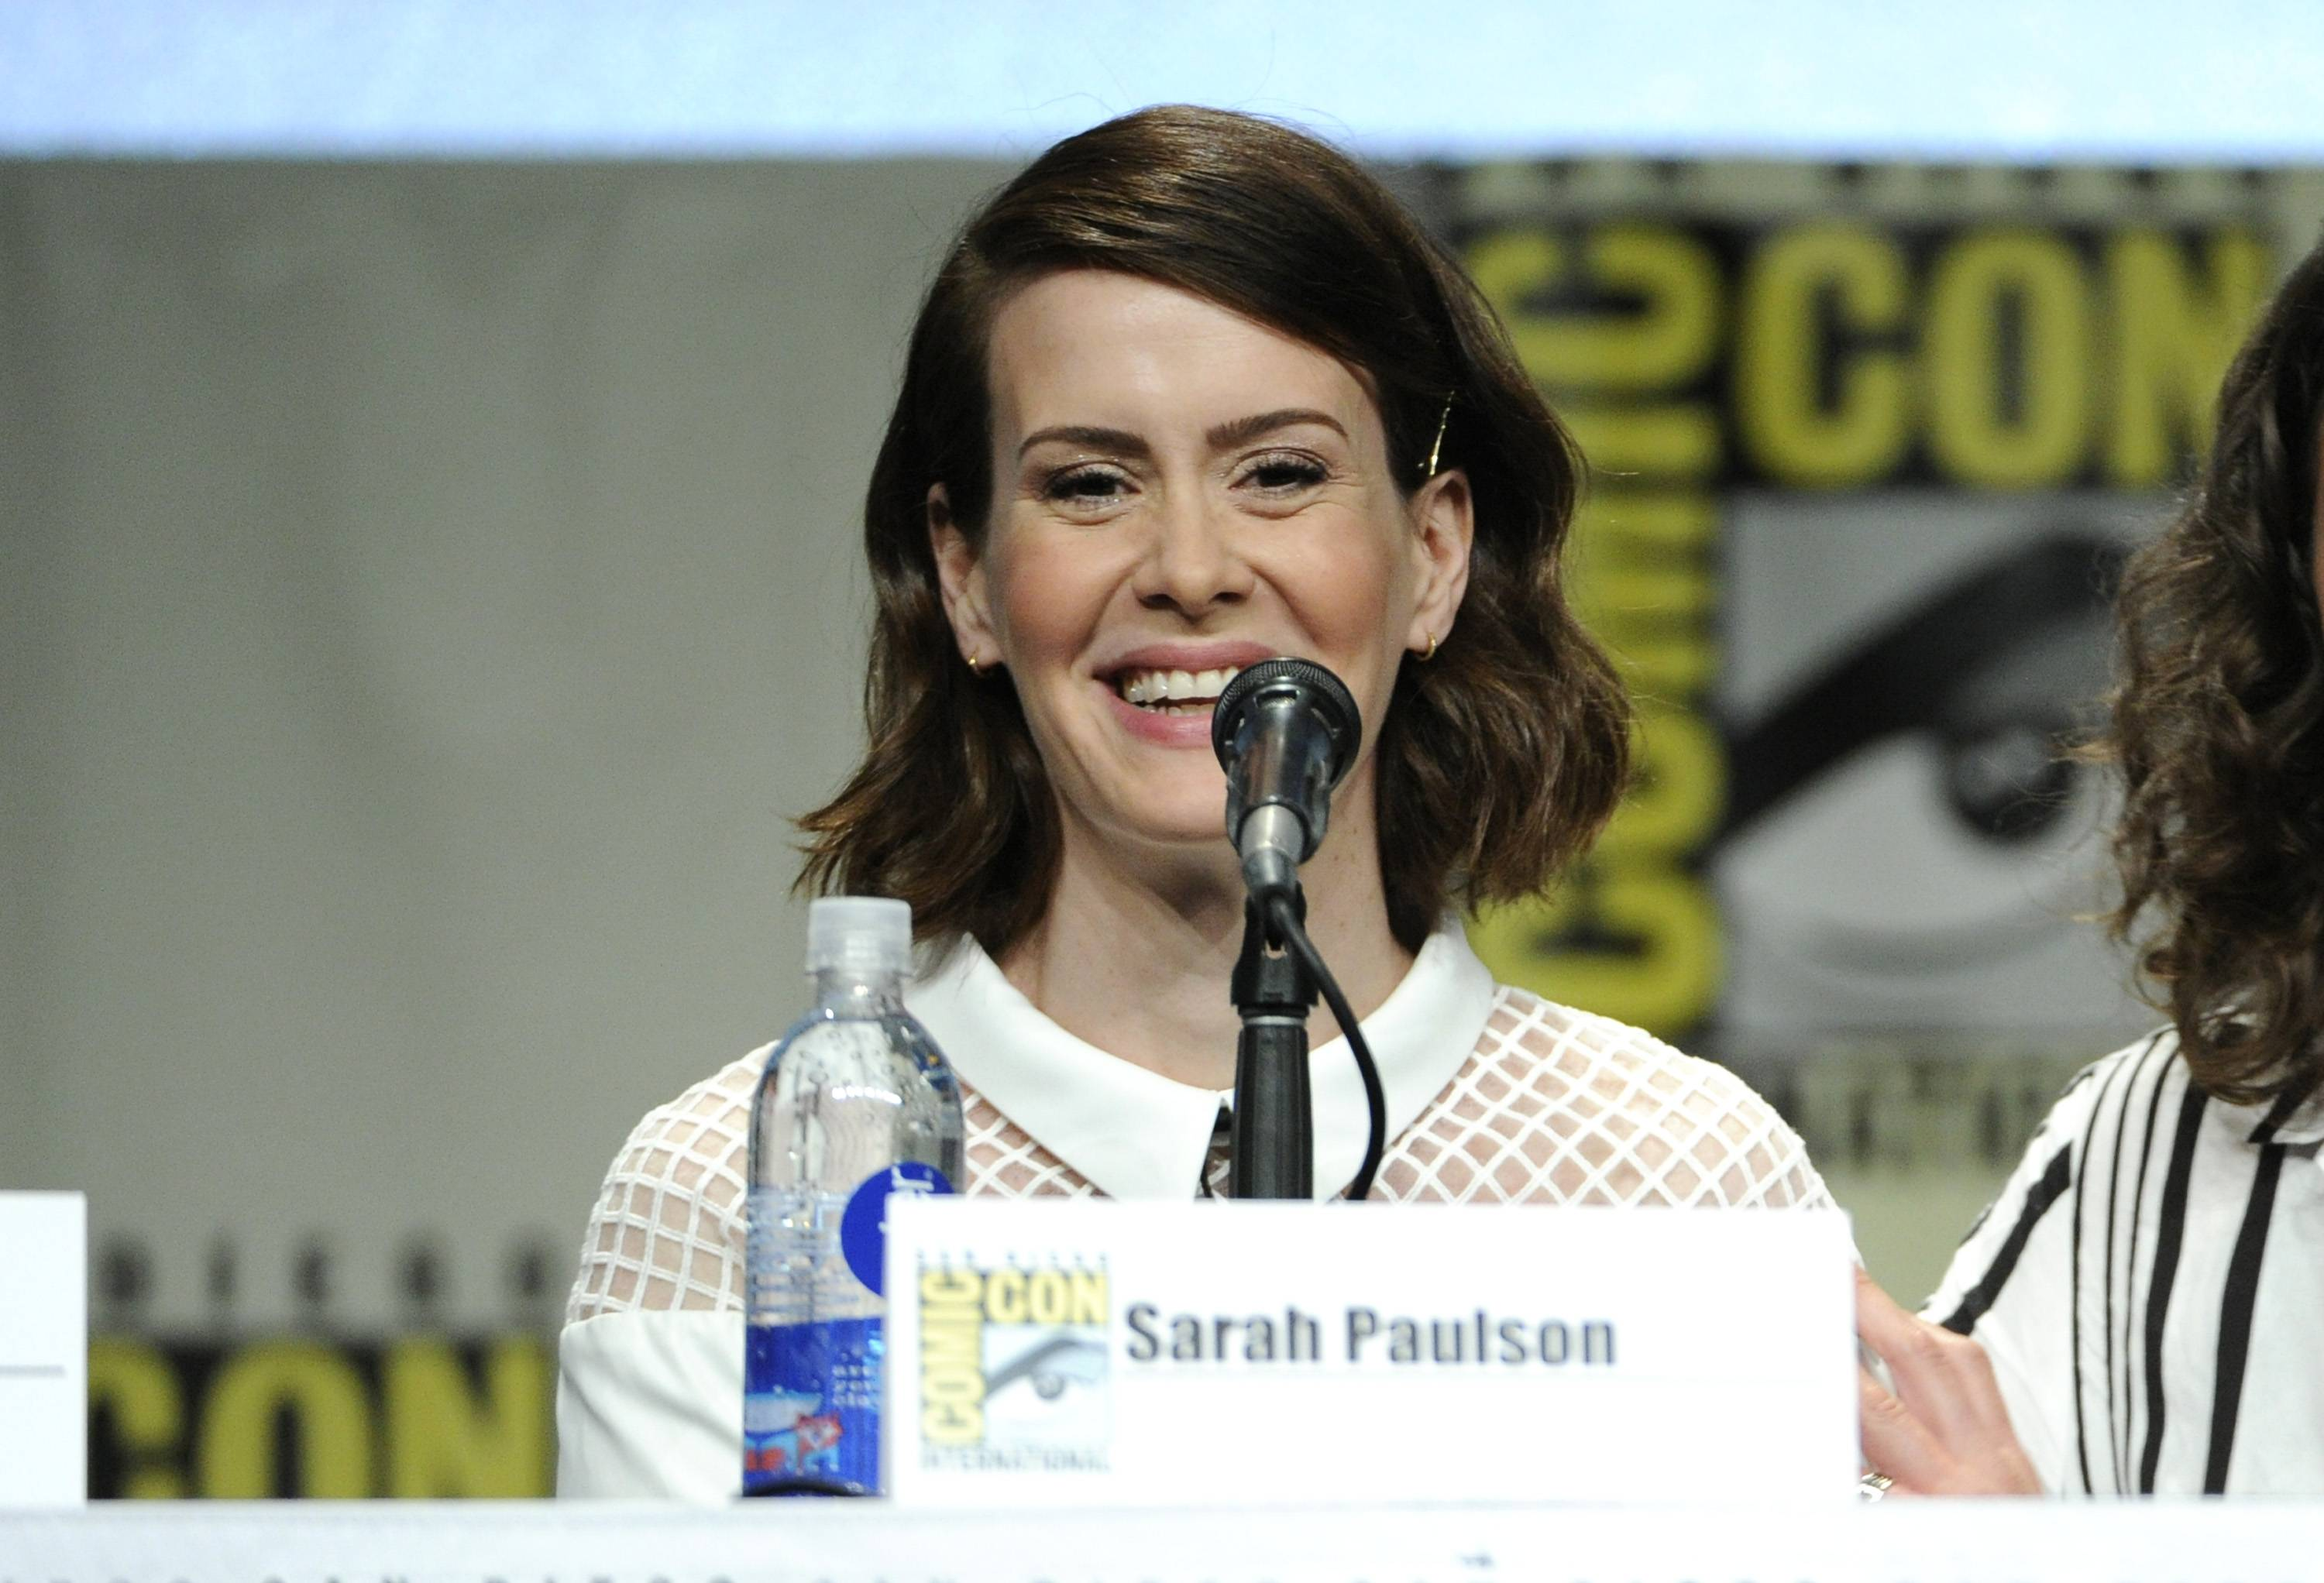 Sarah Paulson attends an Entertainment Weekly panel on Day 3 of Comic-Con International on Saturday.